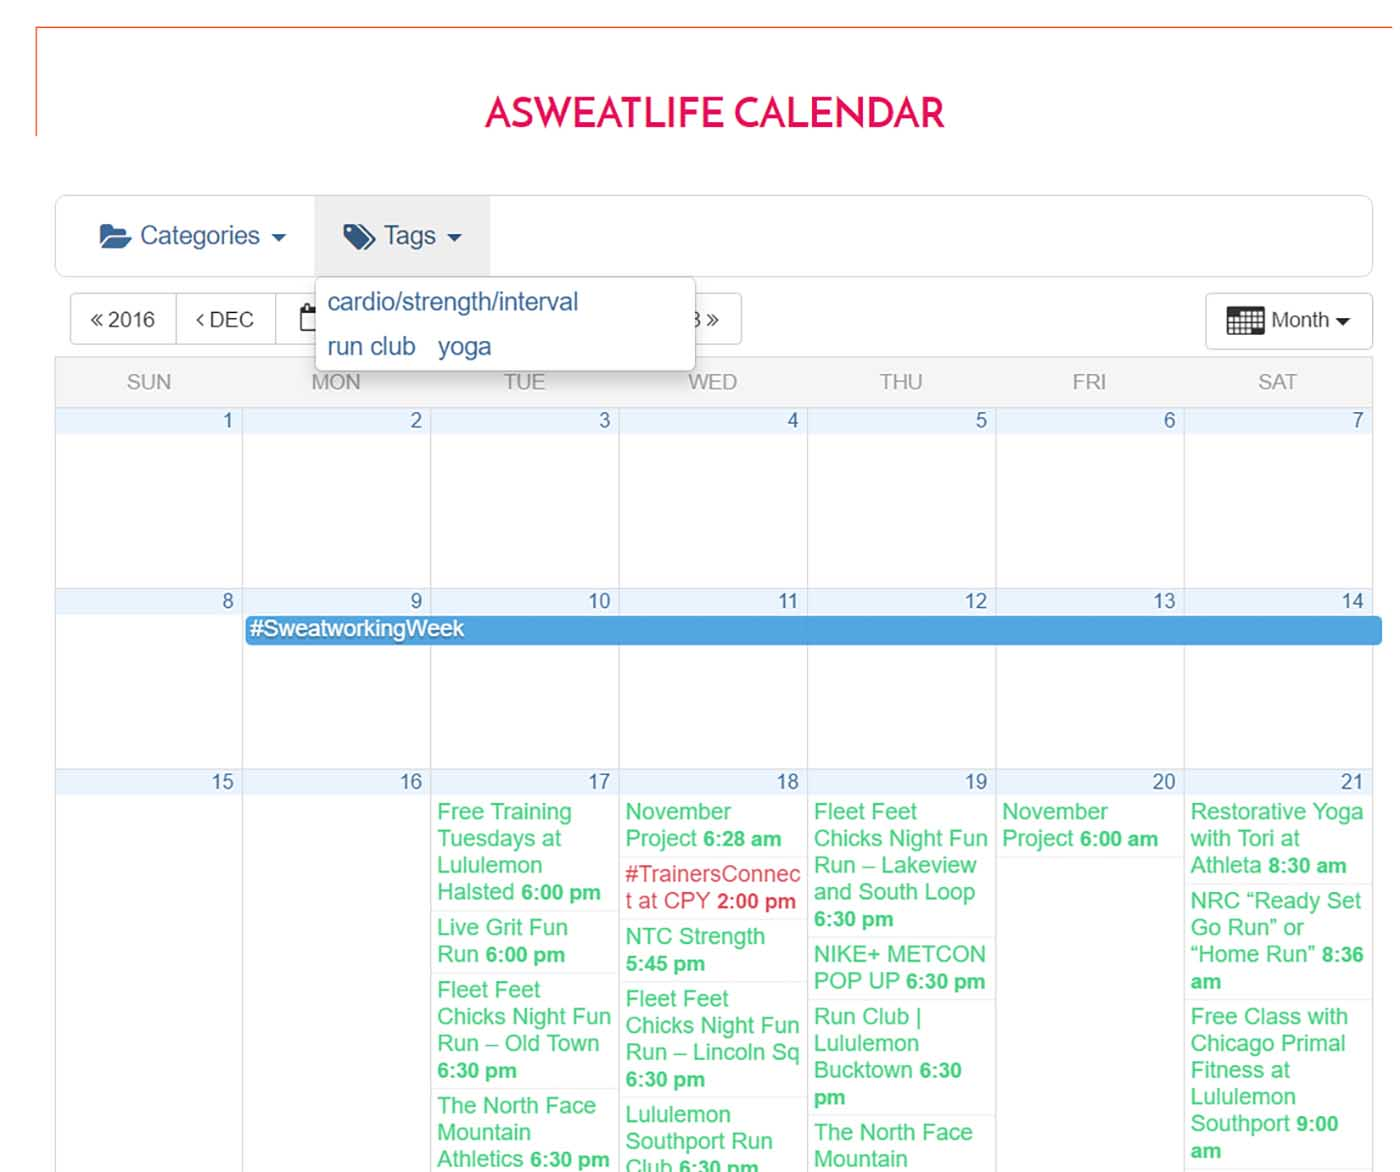 asweatlife_Your New Workout Go-To- Introducing the aSweatLife Calendar_1